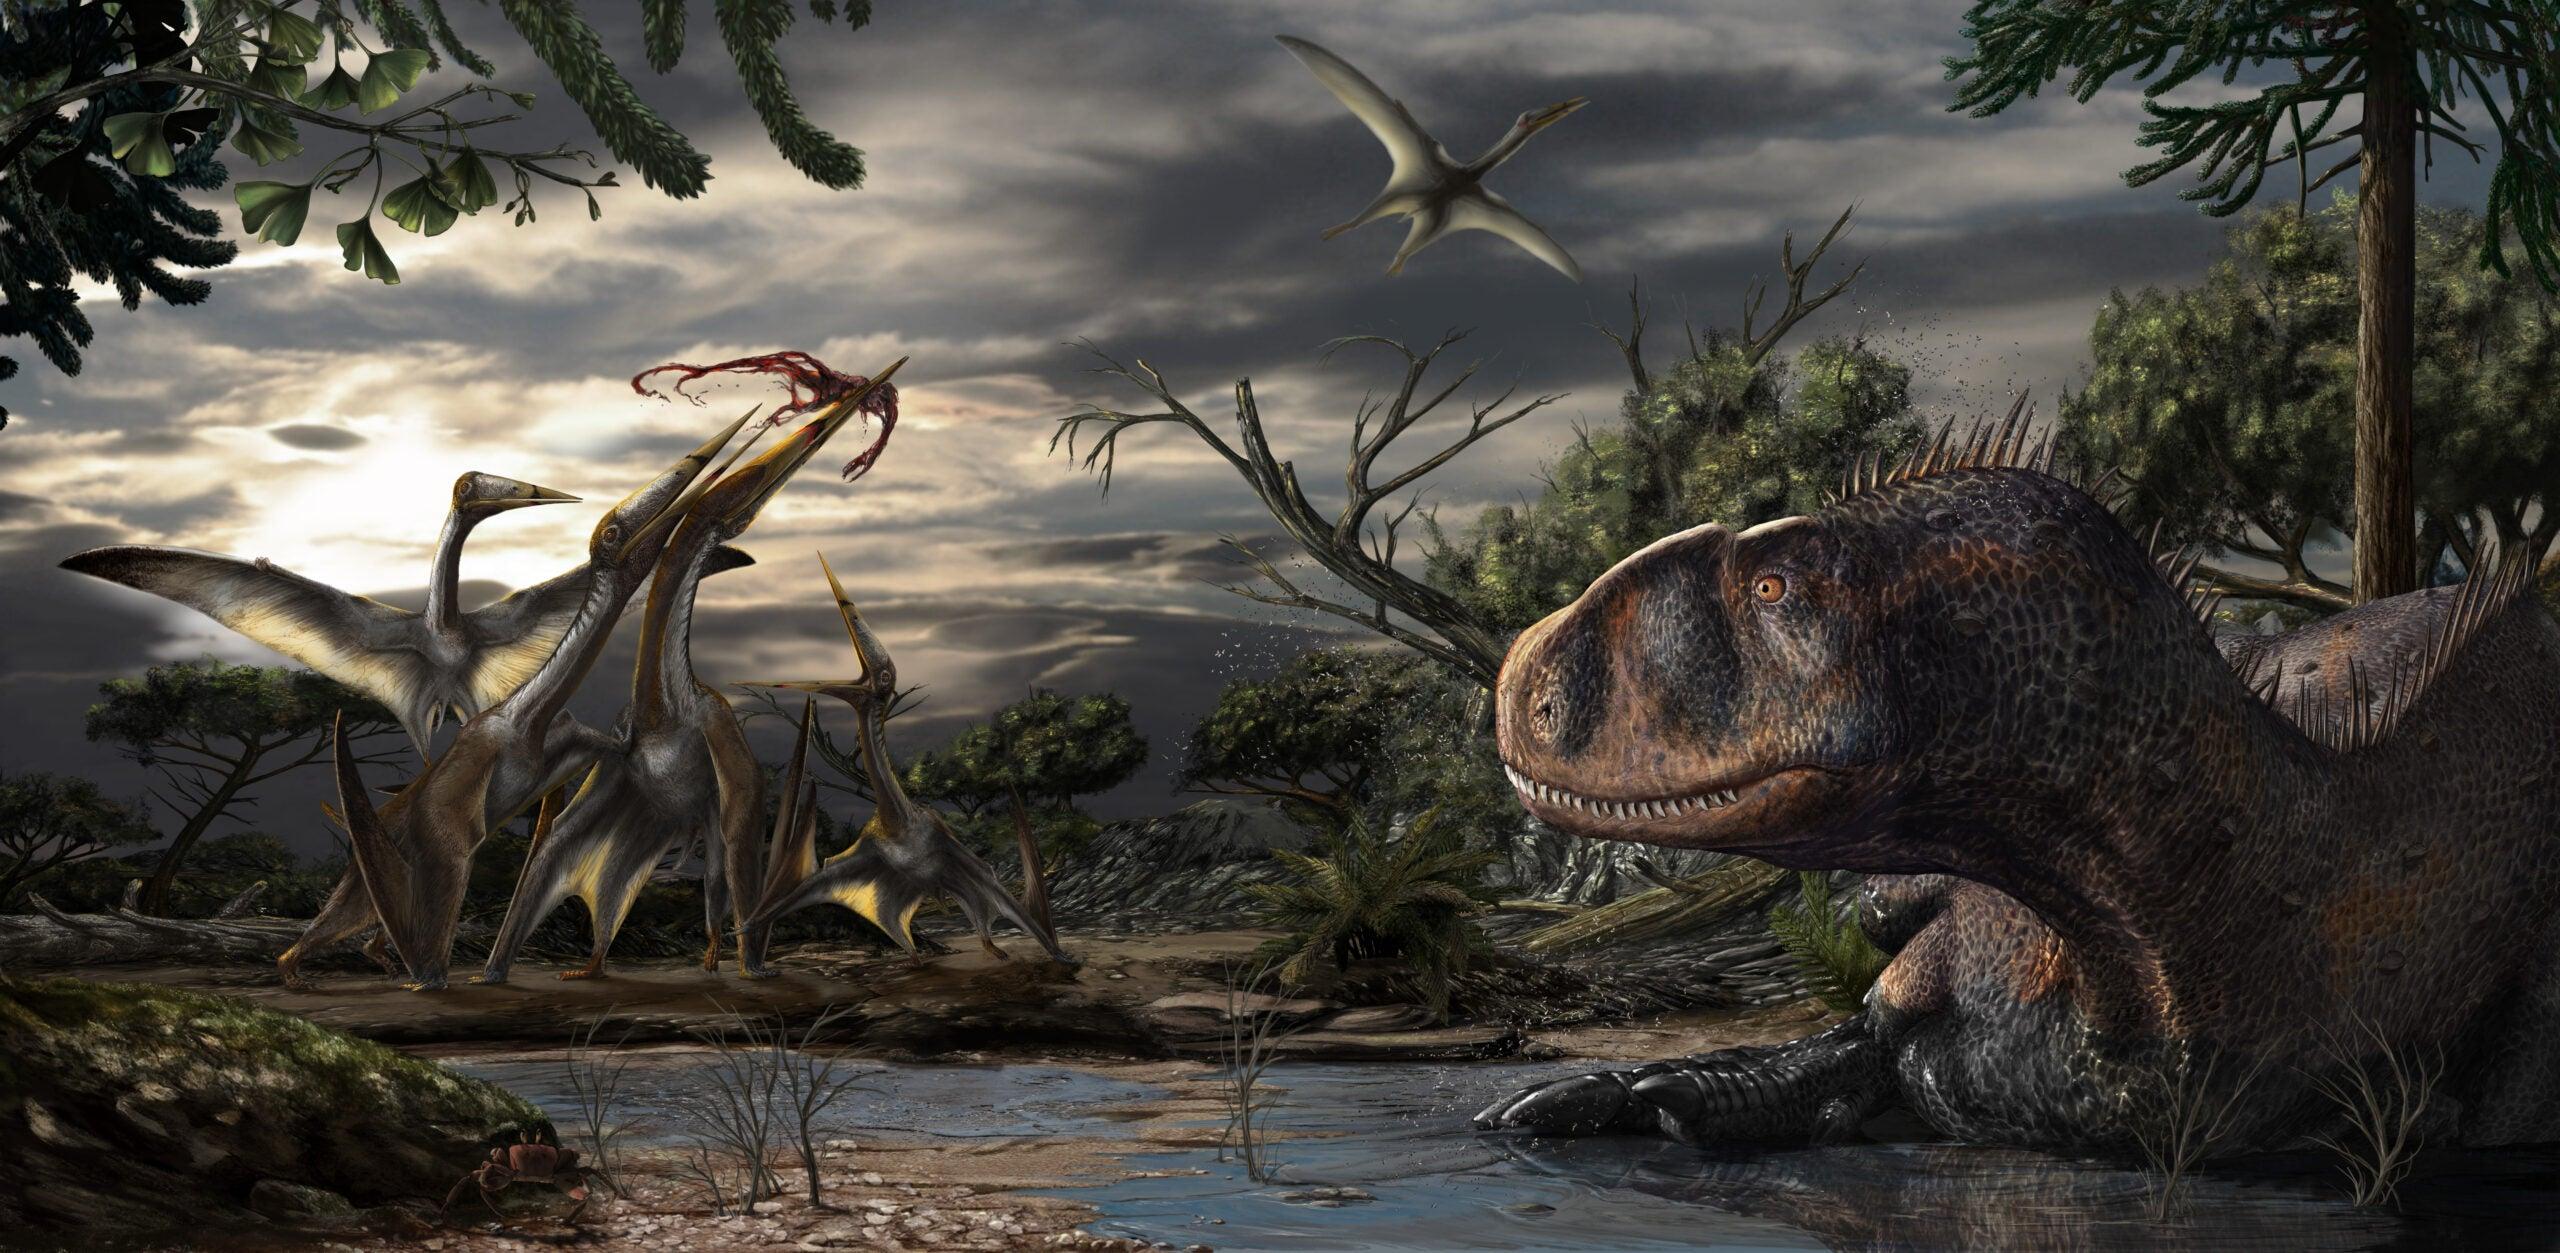 An abelisaur, a short-snouted predatory dinosaur, rests while several pterosaurs fight over leftovers from a carcass.